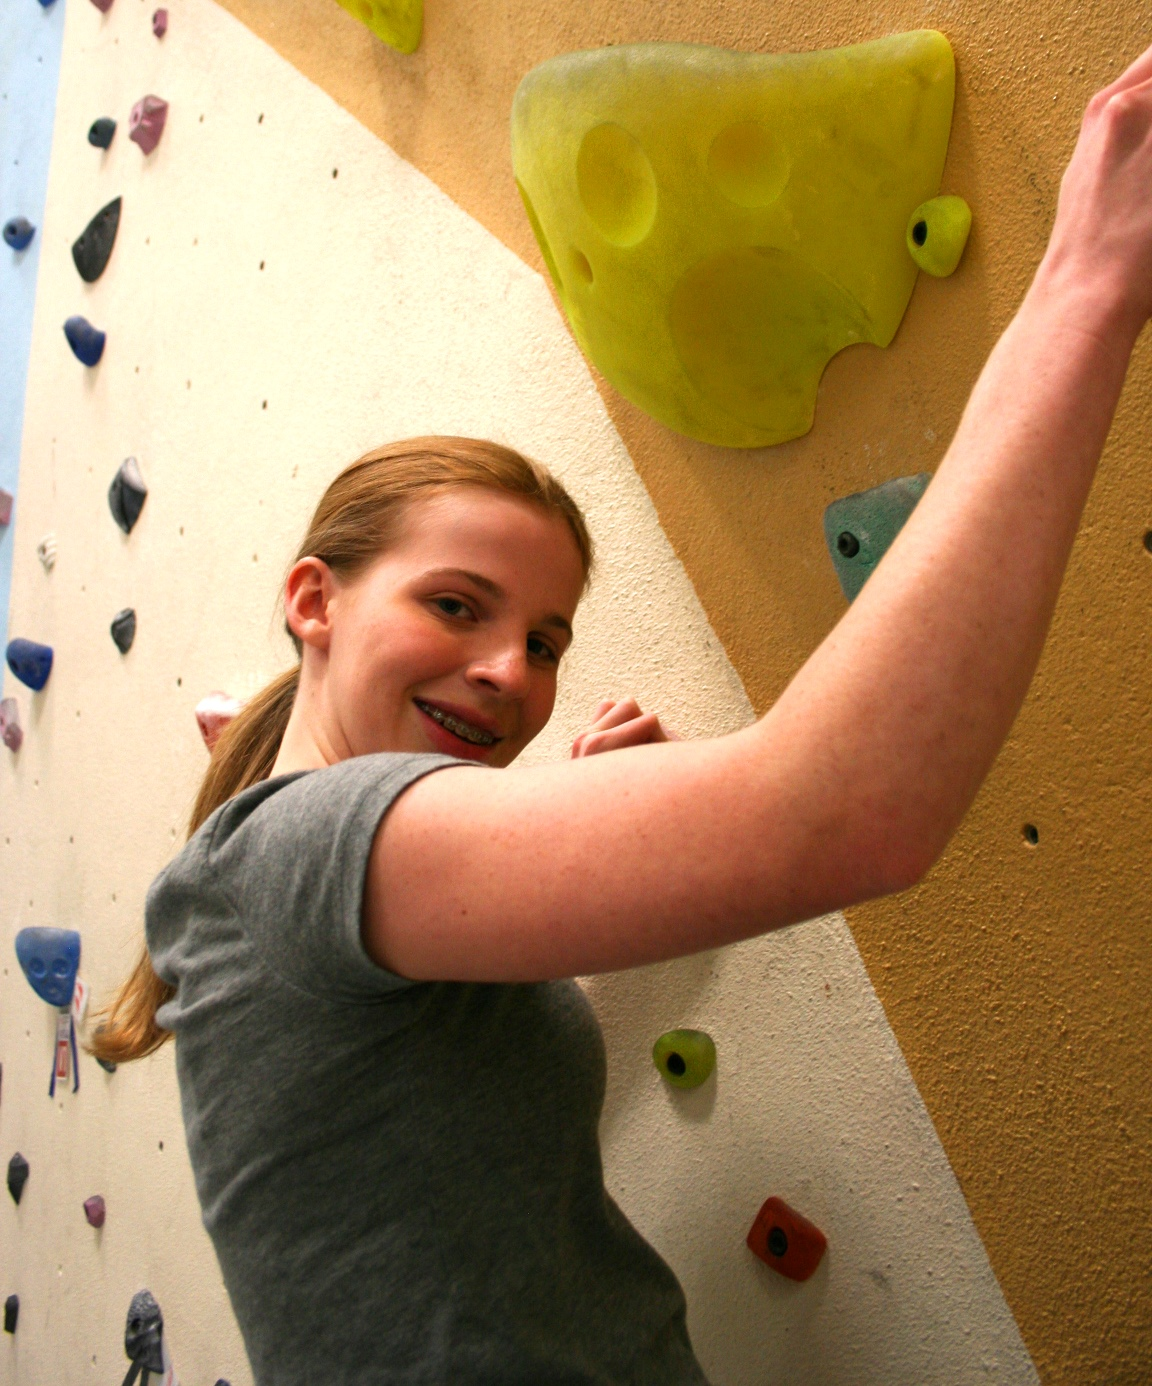 Emily is new to the sport but making efforts and improving each time she comes to the gym.